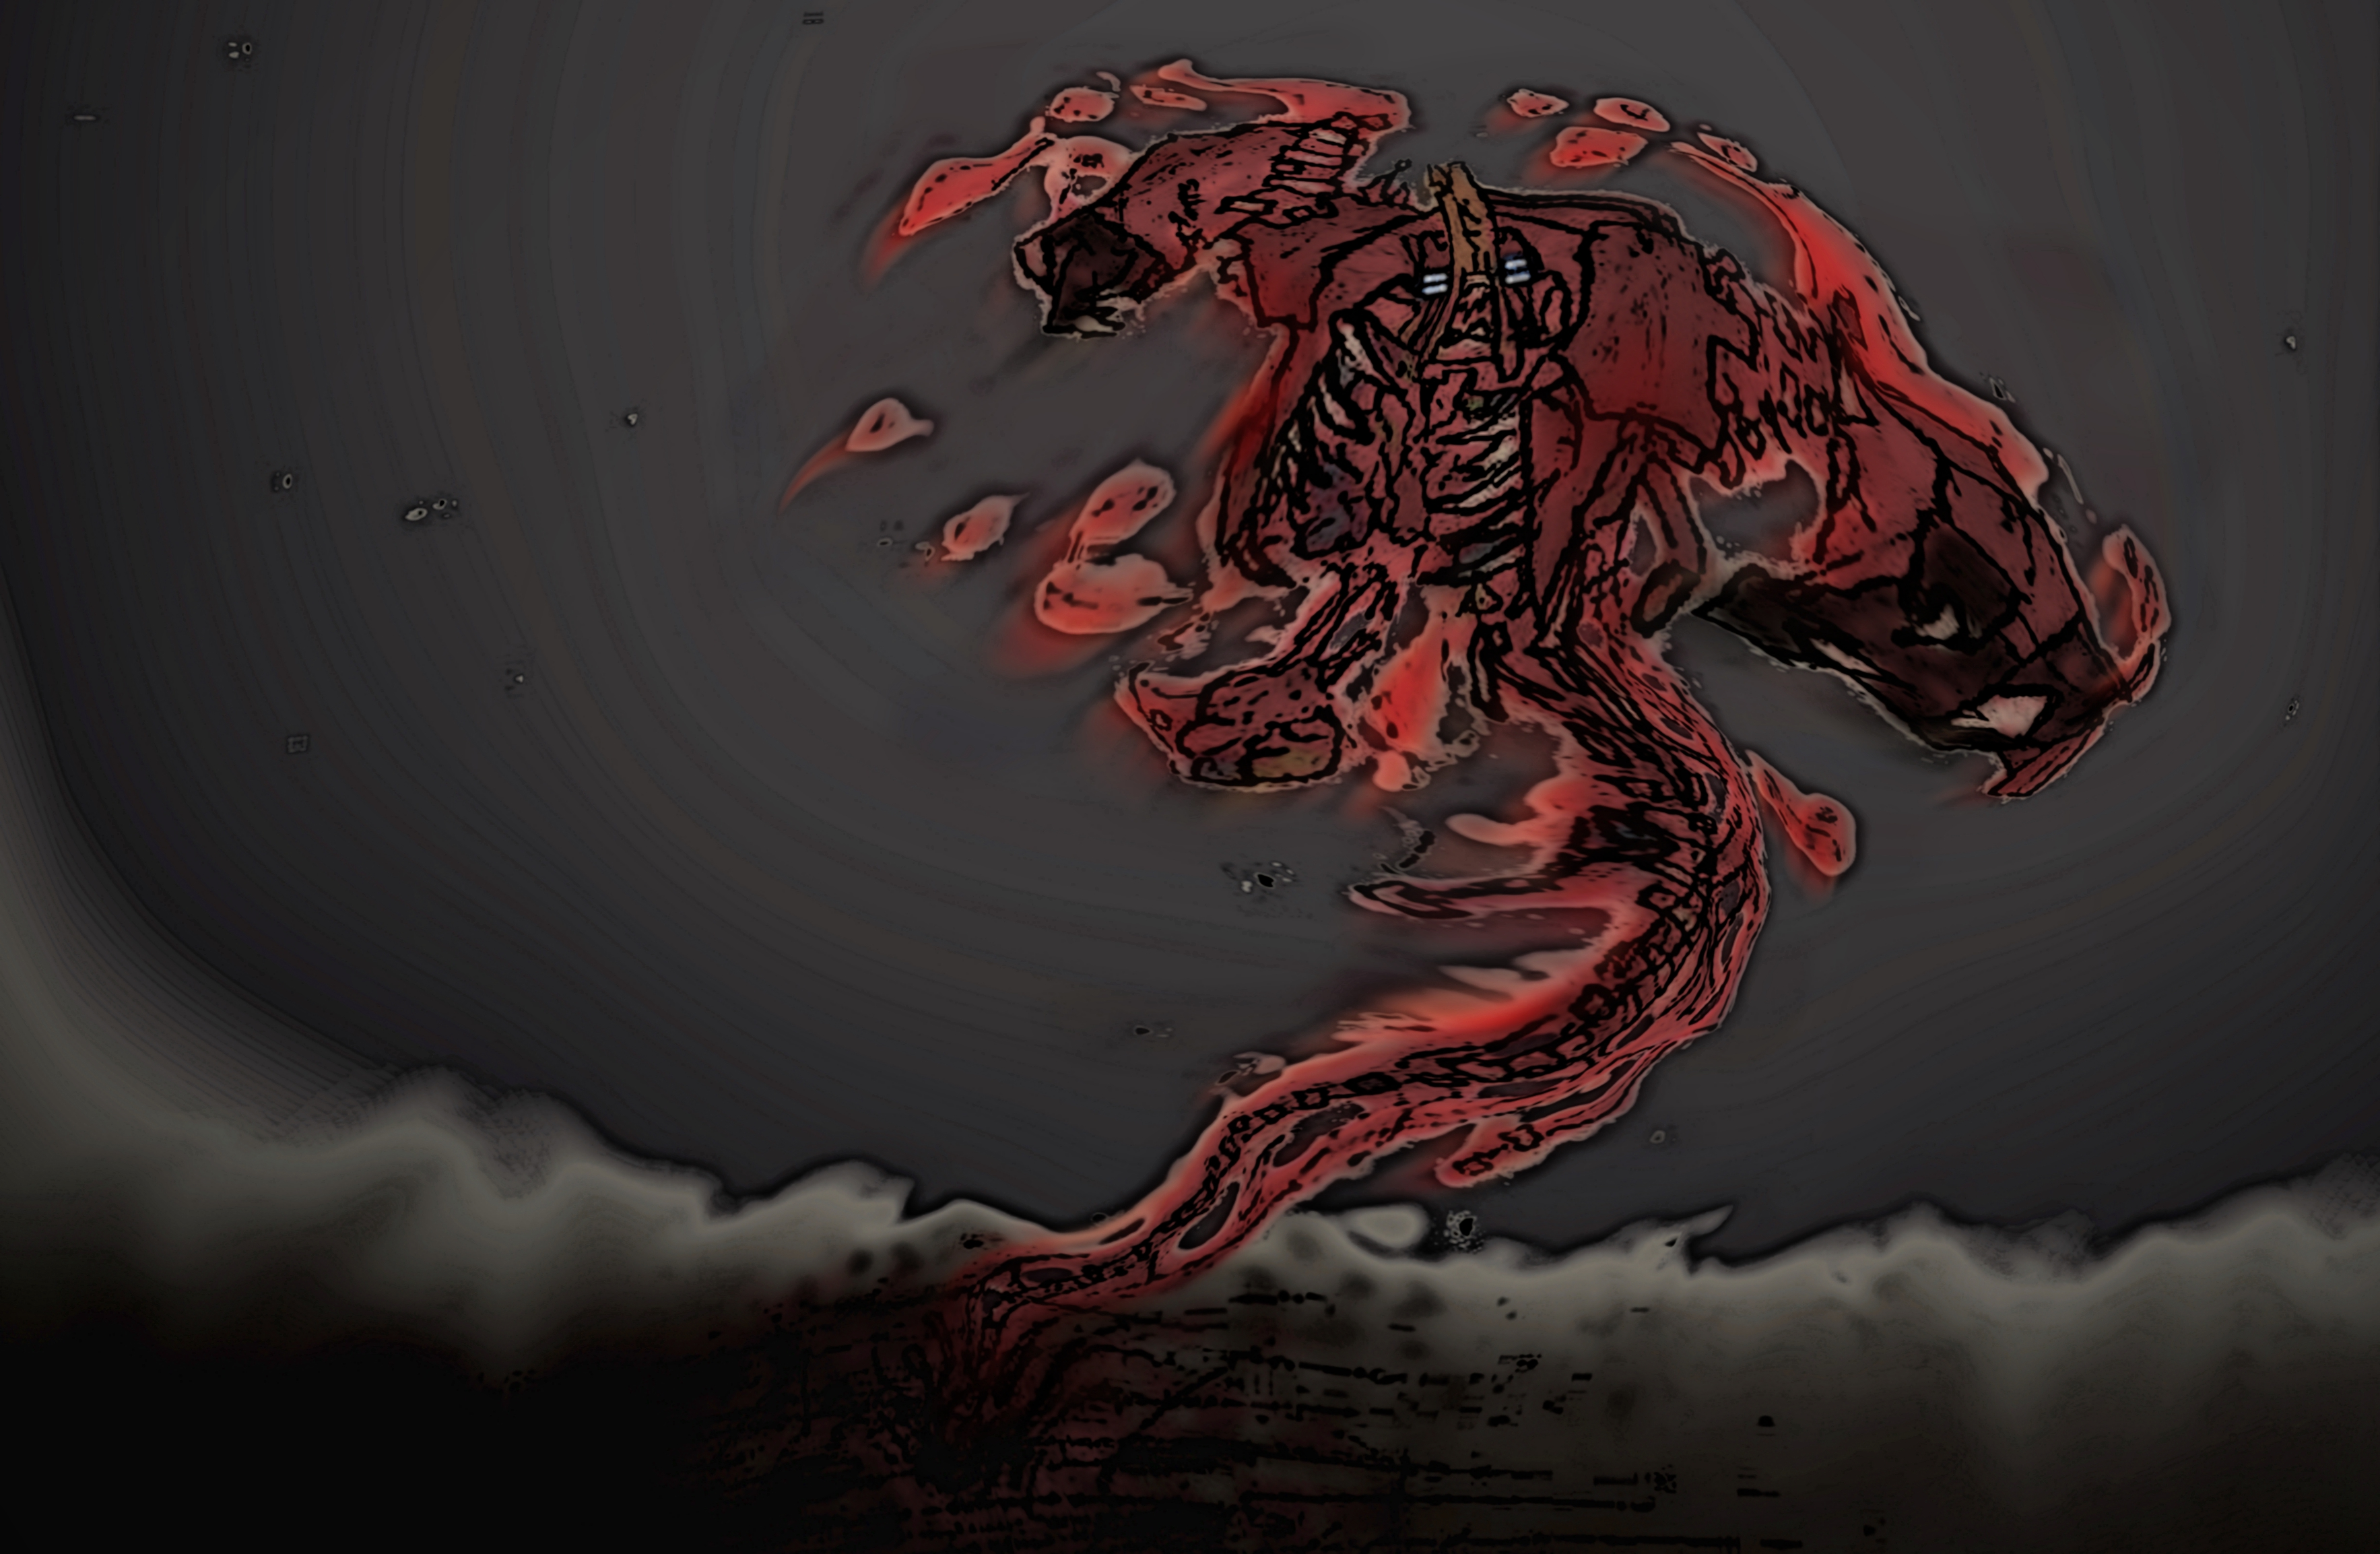 Garry surfs out of hell in a wake of organs by DawnofNSSD